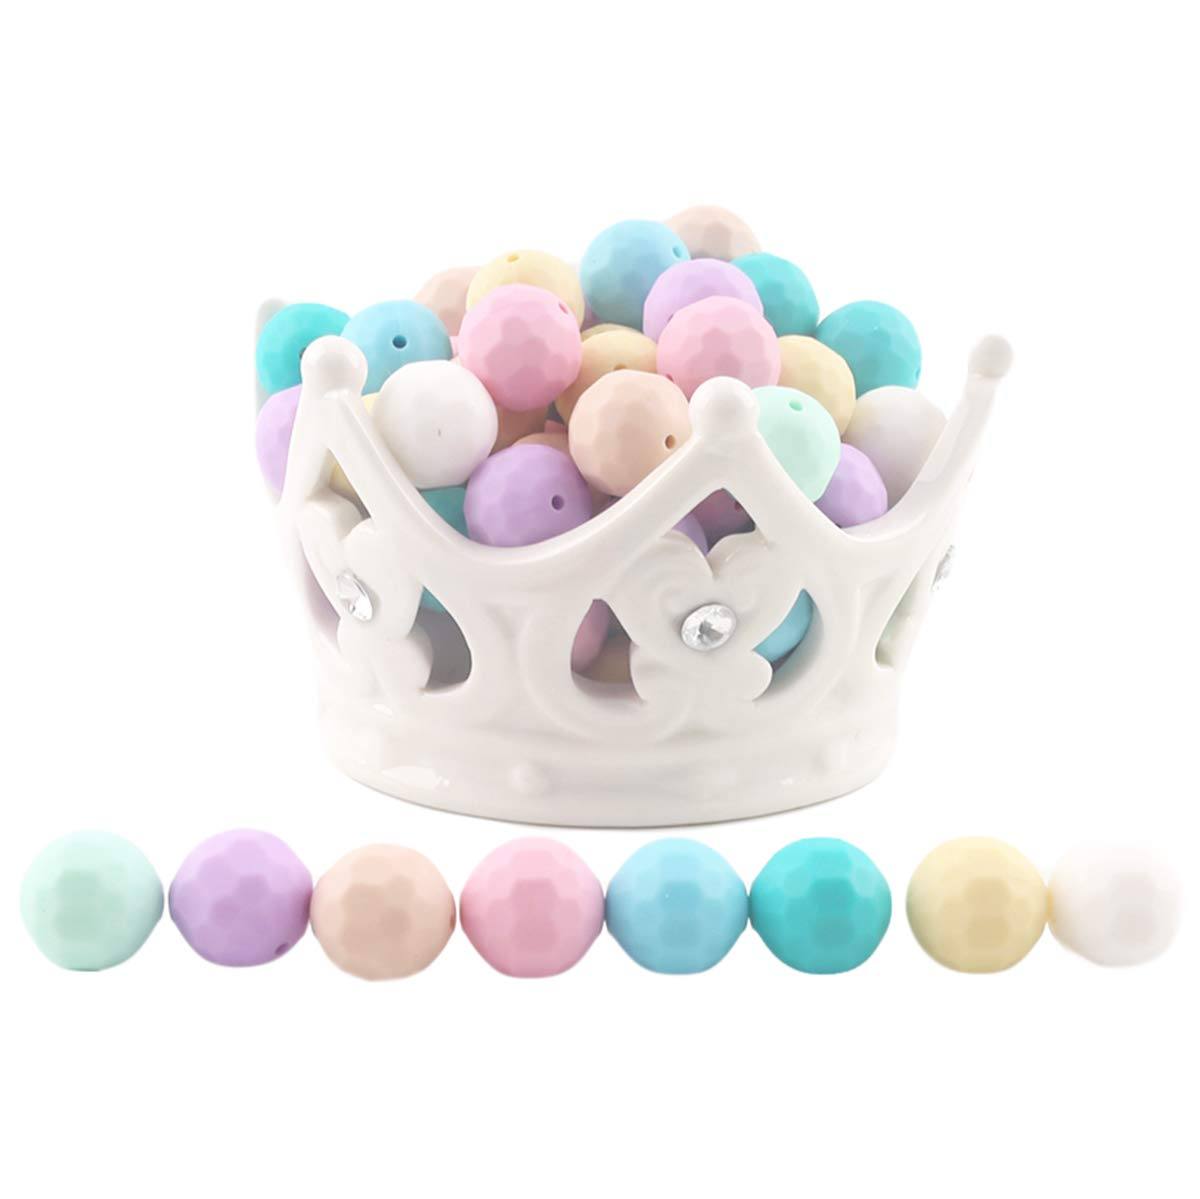 Baby Love Home Silicone Teething Round Beads Multi-faceted 15mm 100pc Teether Beads Candy Colors DIY Teether Jewelry for Mom and Baby Necklace Teething Toy by Baby Love Home